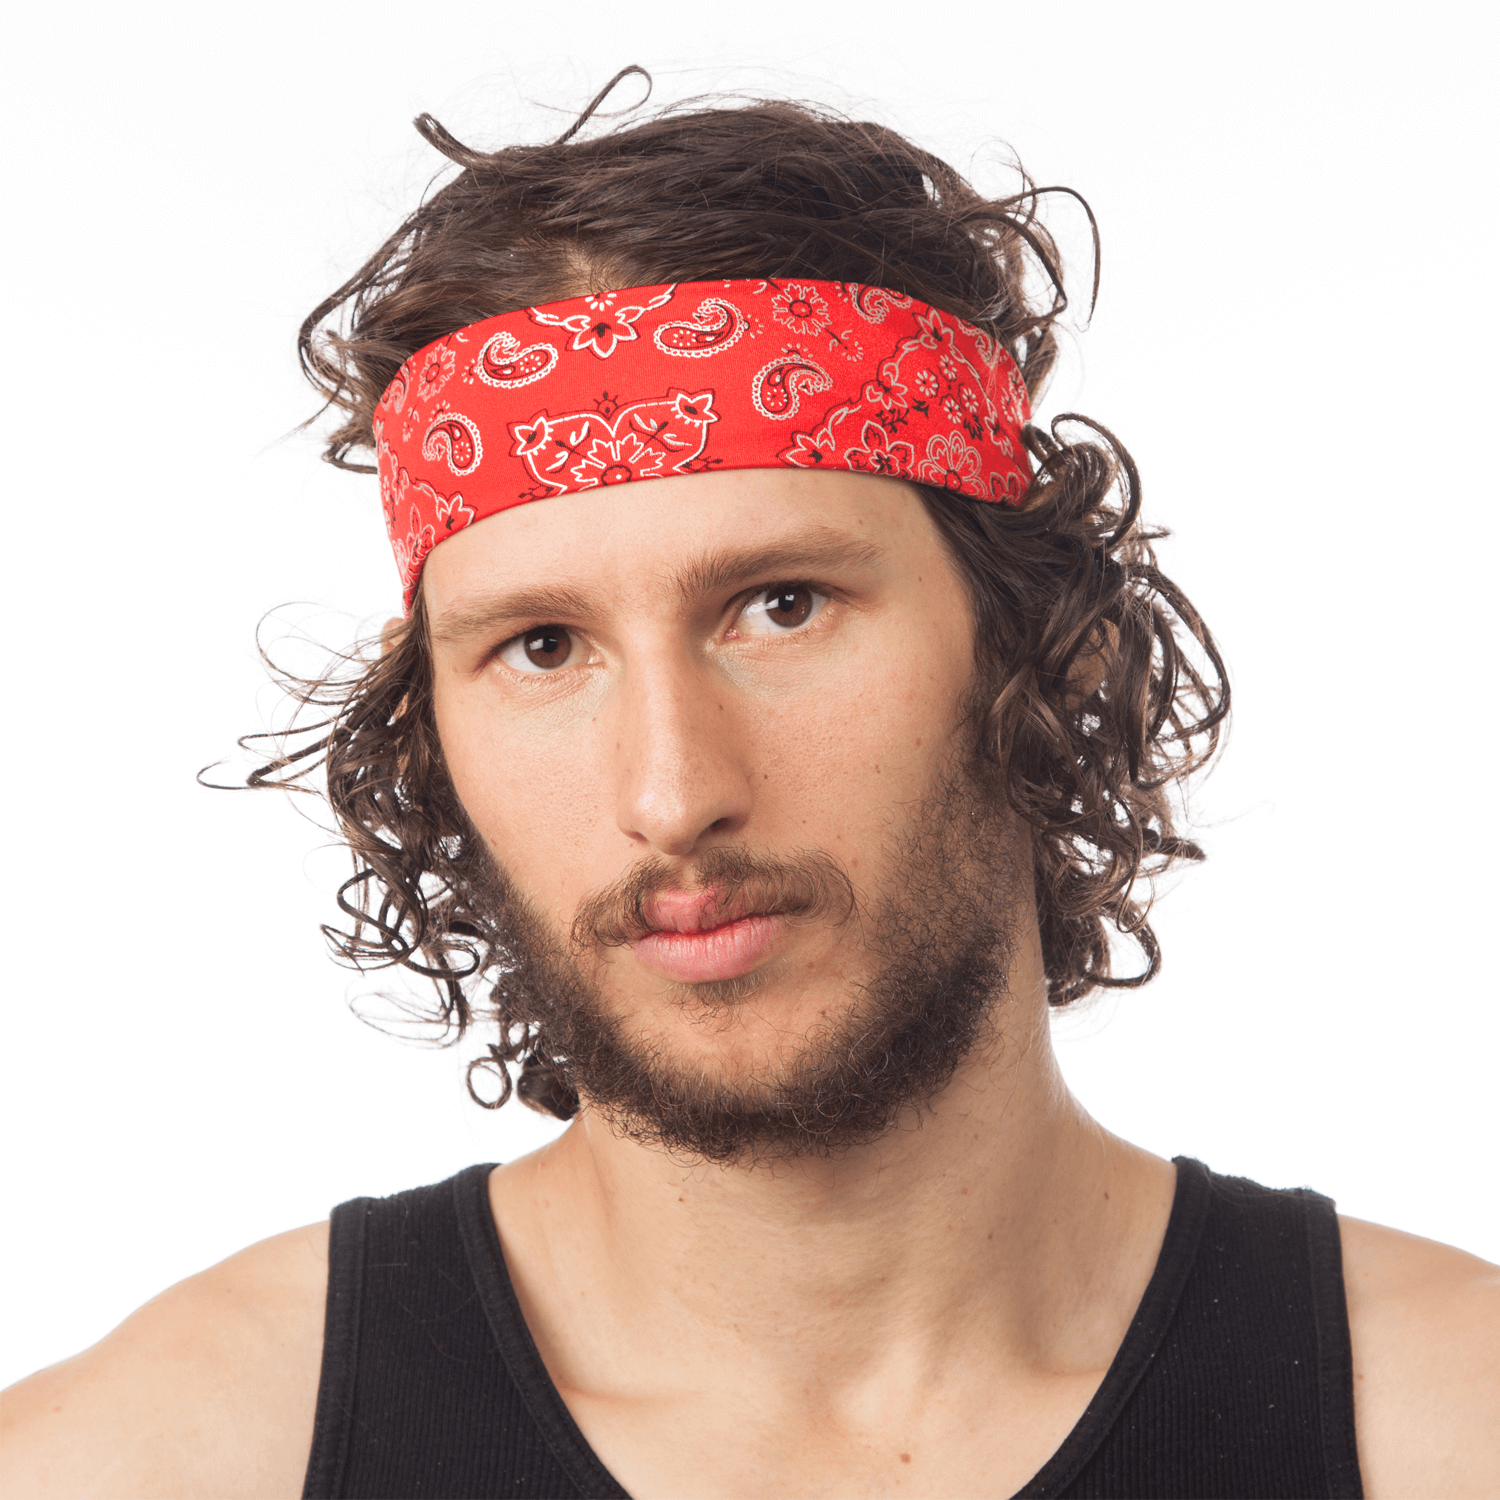 bandana hindu single men Welcome to the simple online dating site, here you can chat, date, or just flirt with men or women sign up for free and send messages to single women or man.